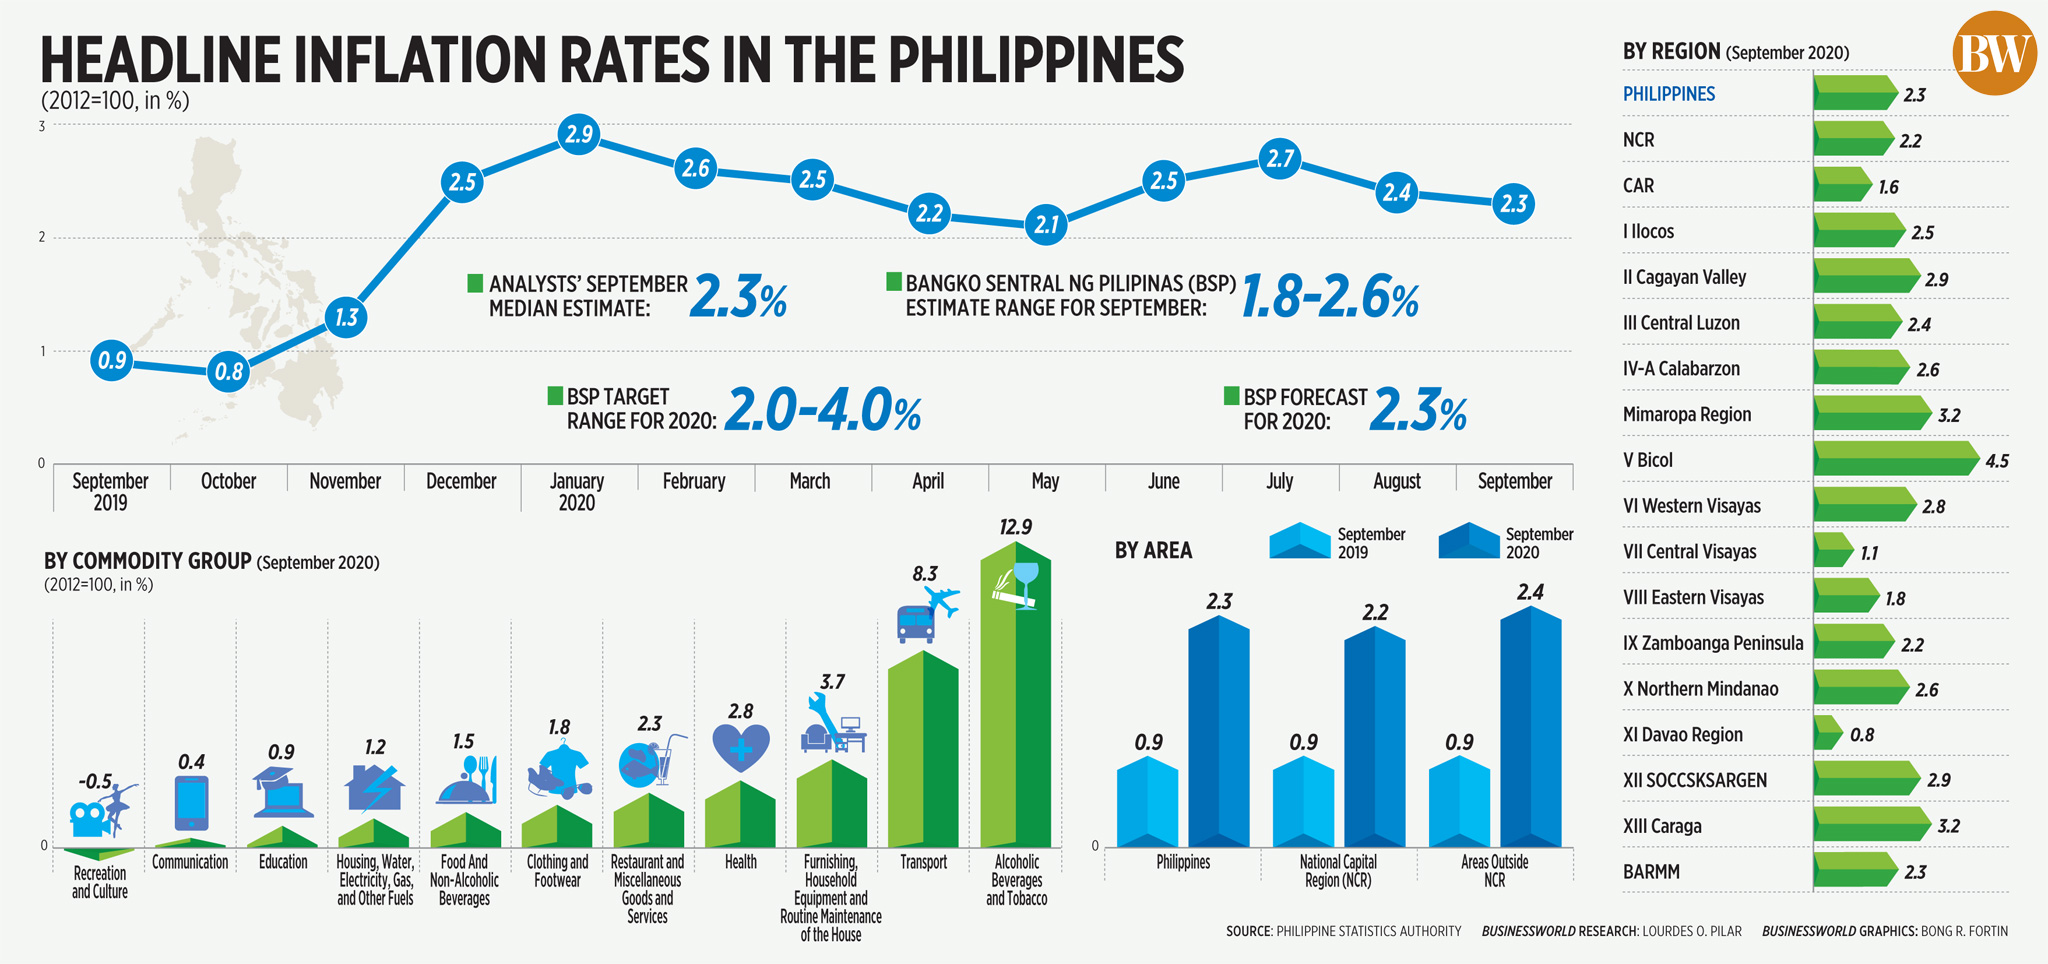 Headline inflation rates in the Philippines (Sept. 2020)